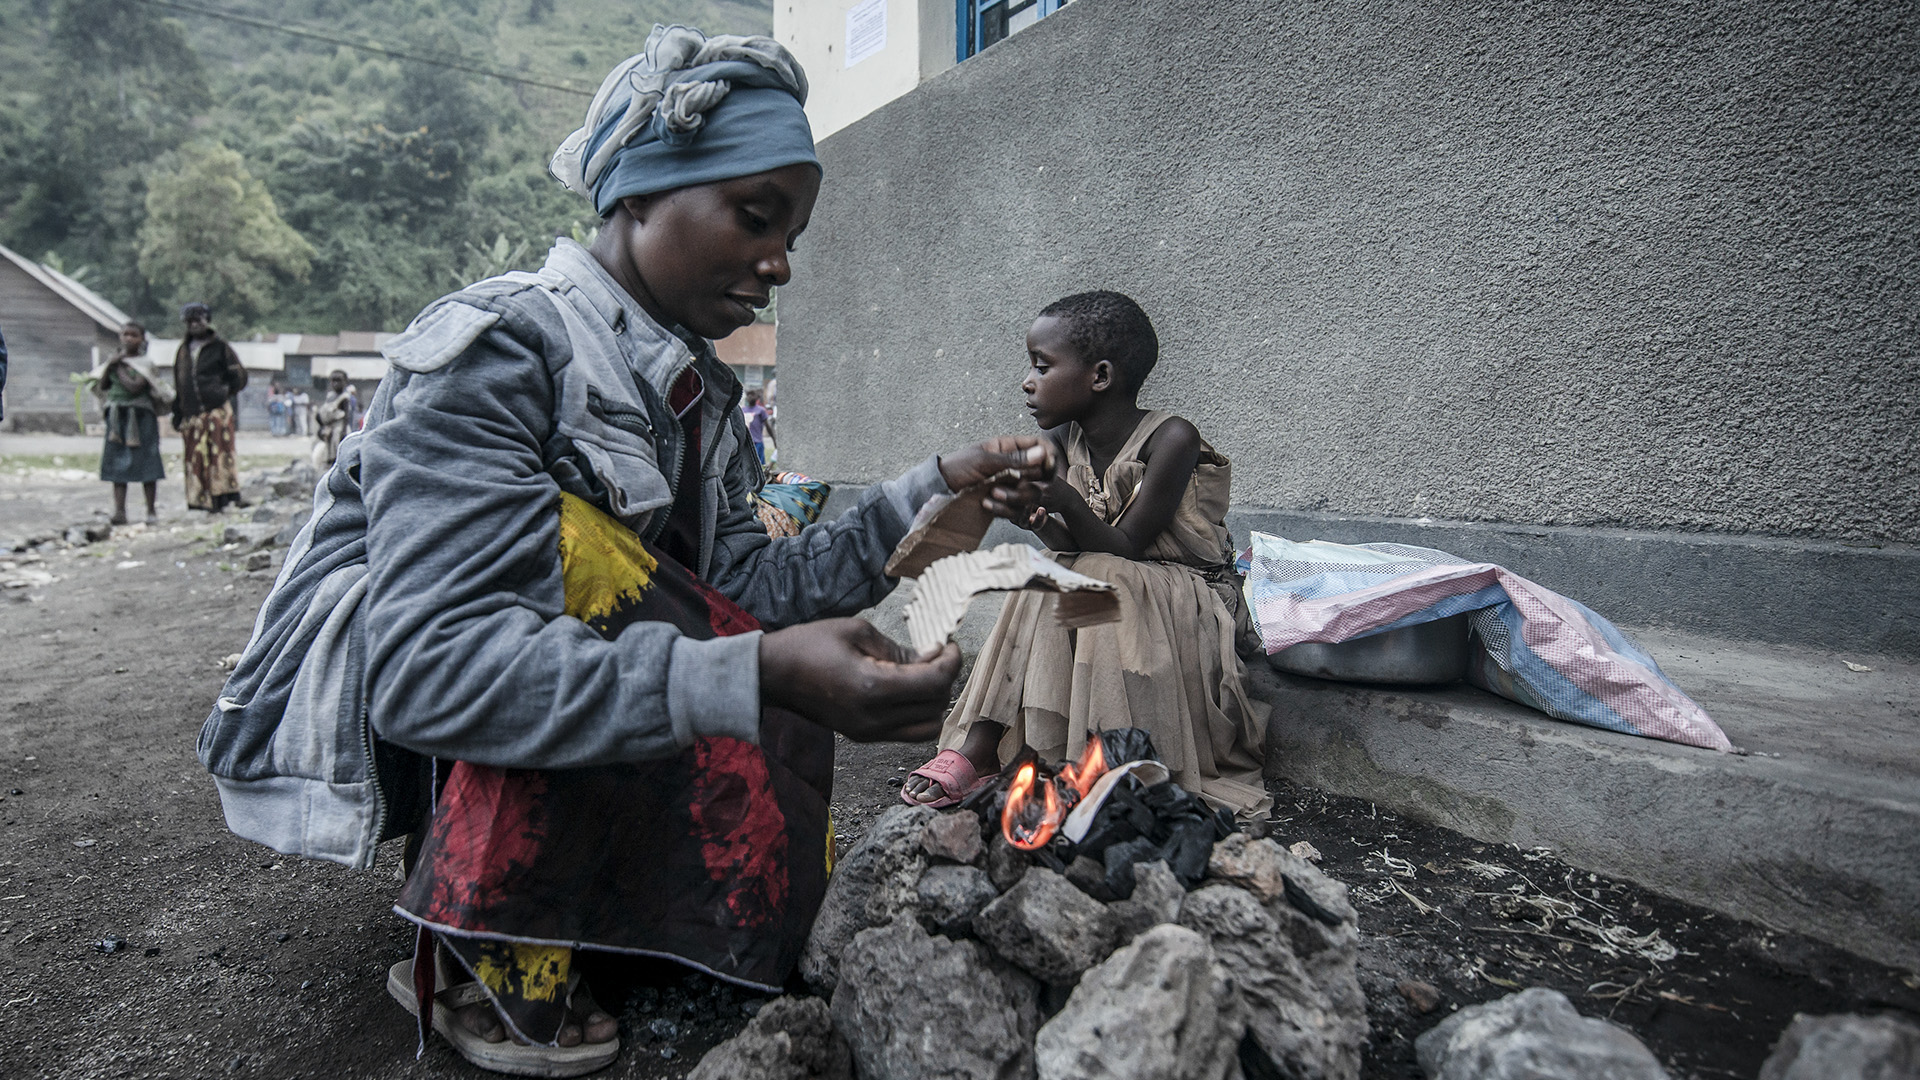 Hard Road To Recovery For Democratic Republic Of Congo's Volcanic Eruption Victims